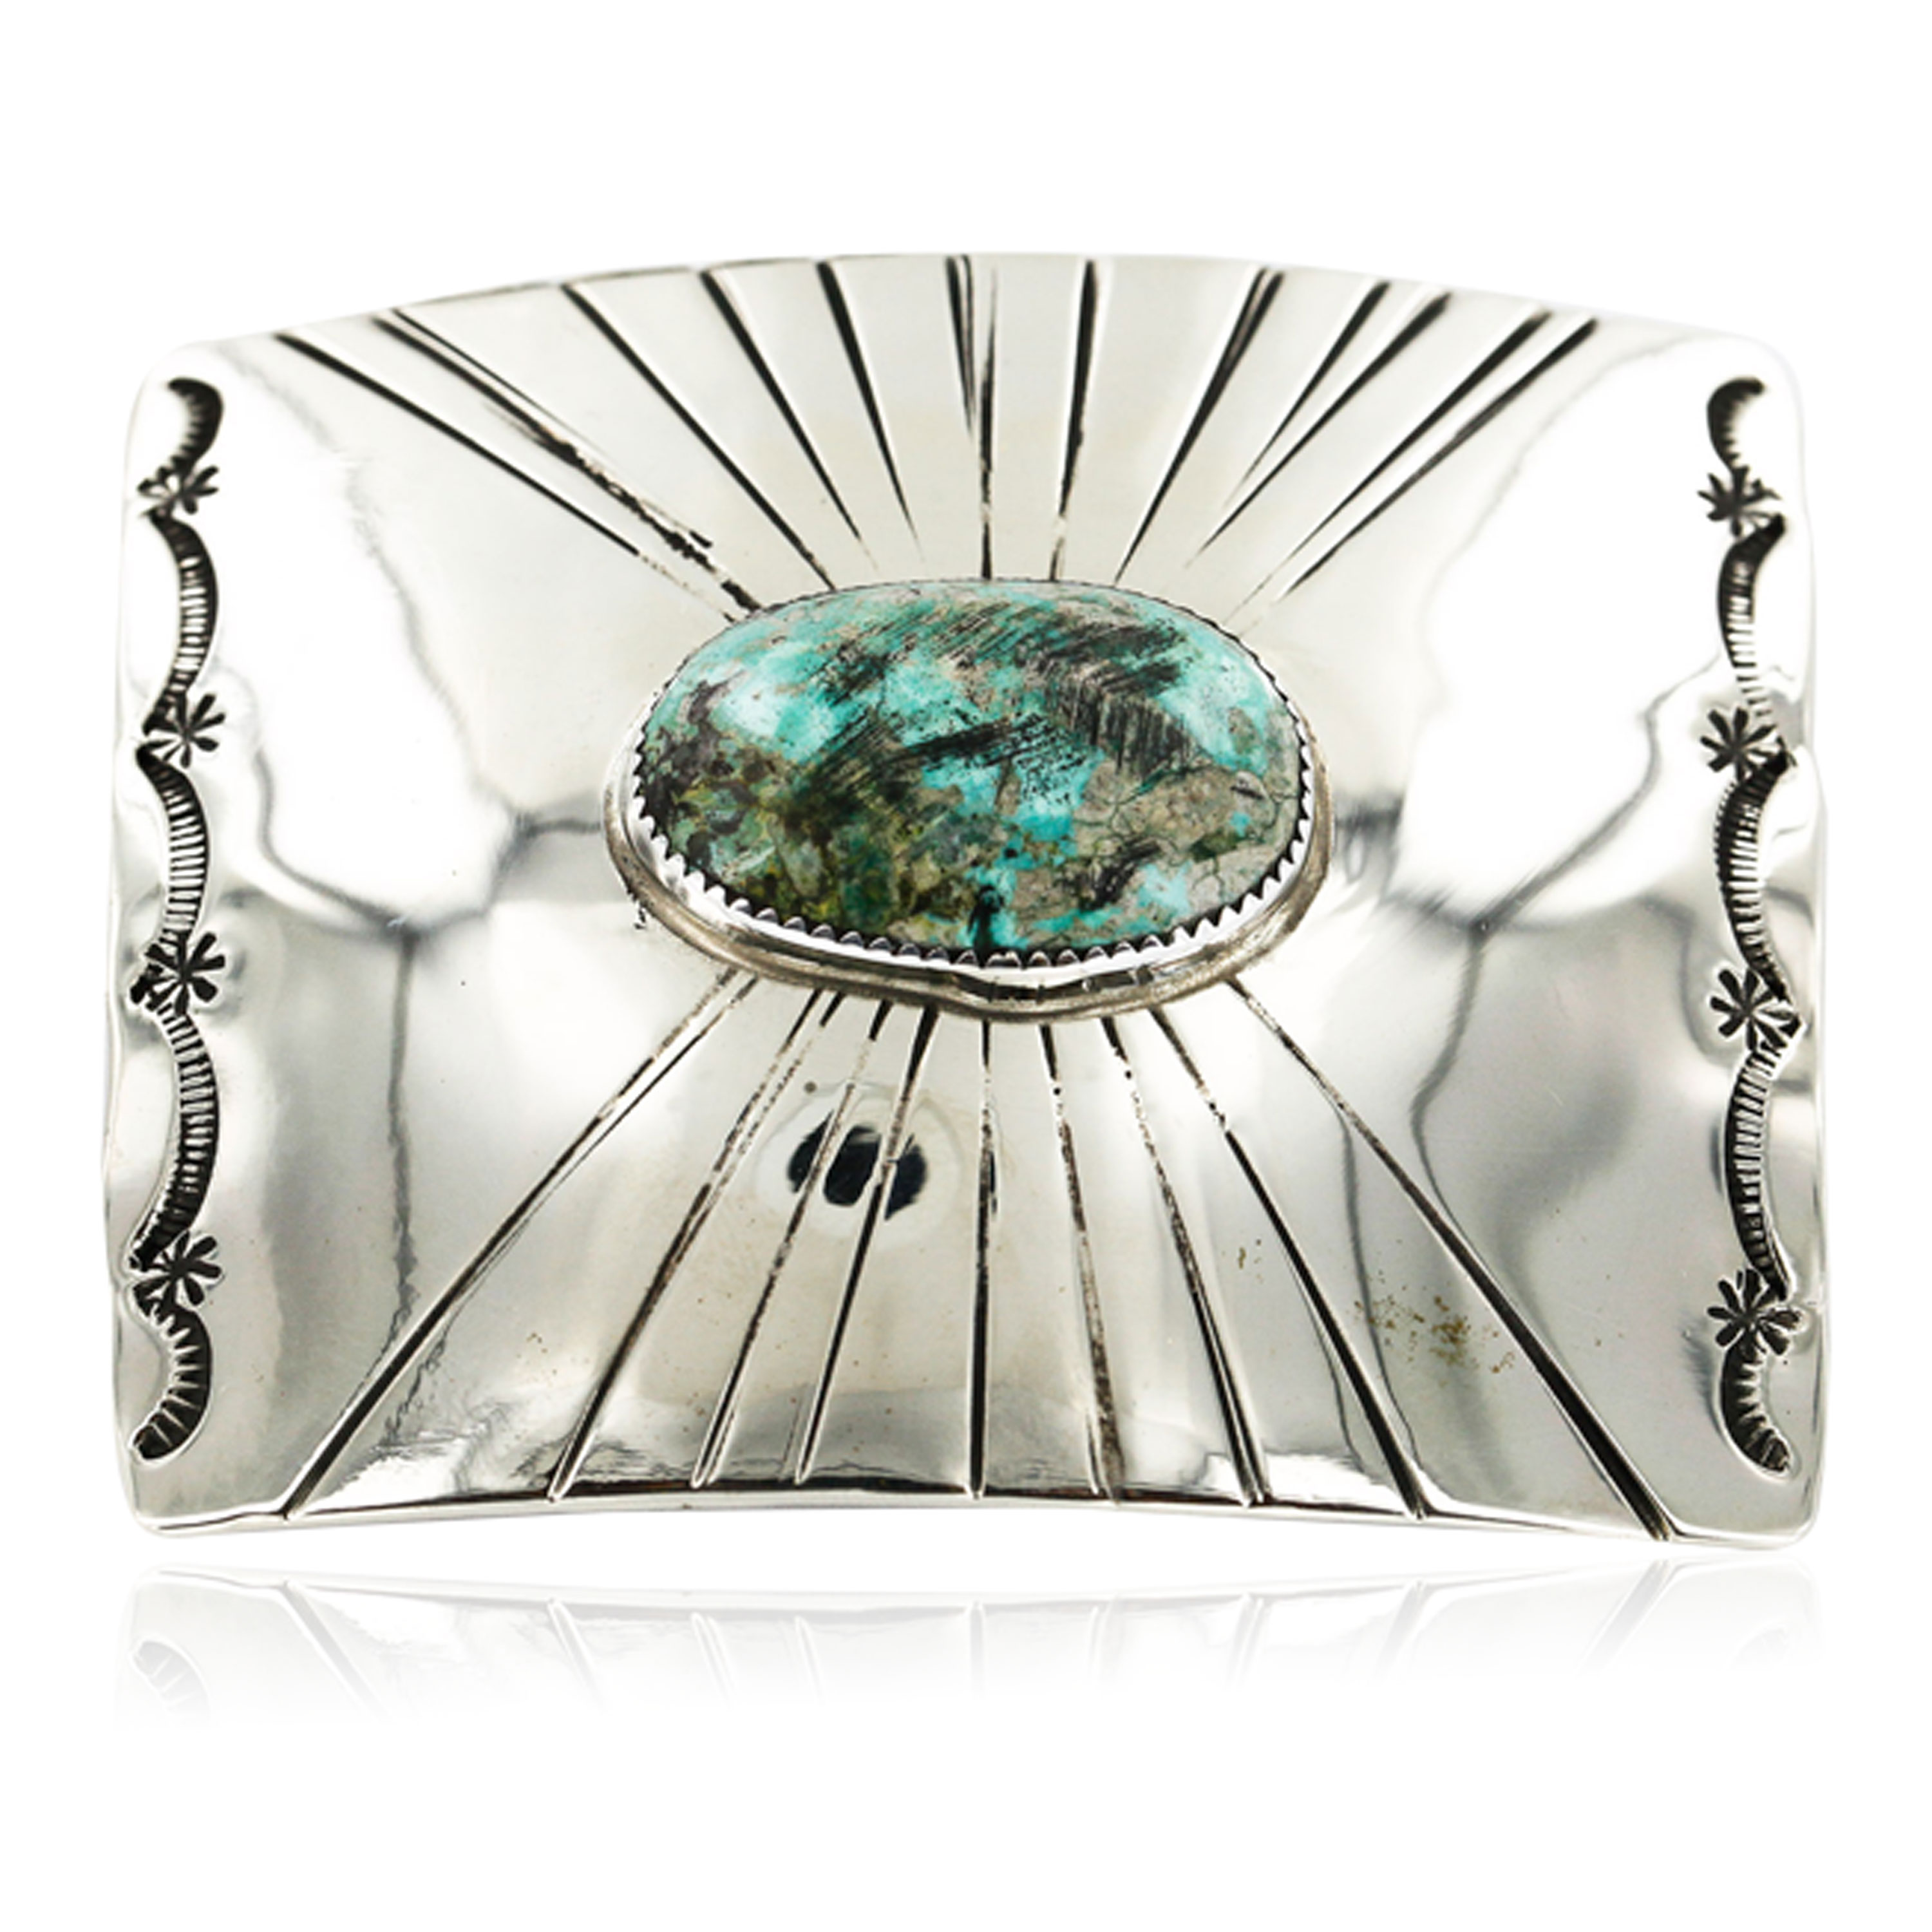 Certified Authentic Handmade Navajo Nickel Natural Turquoise Native American Buckle 1198 All Products 391265104511 1198 (by LomaSiiva)